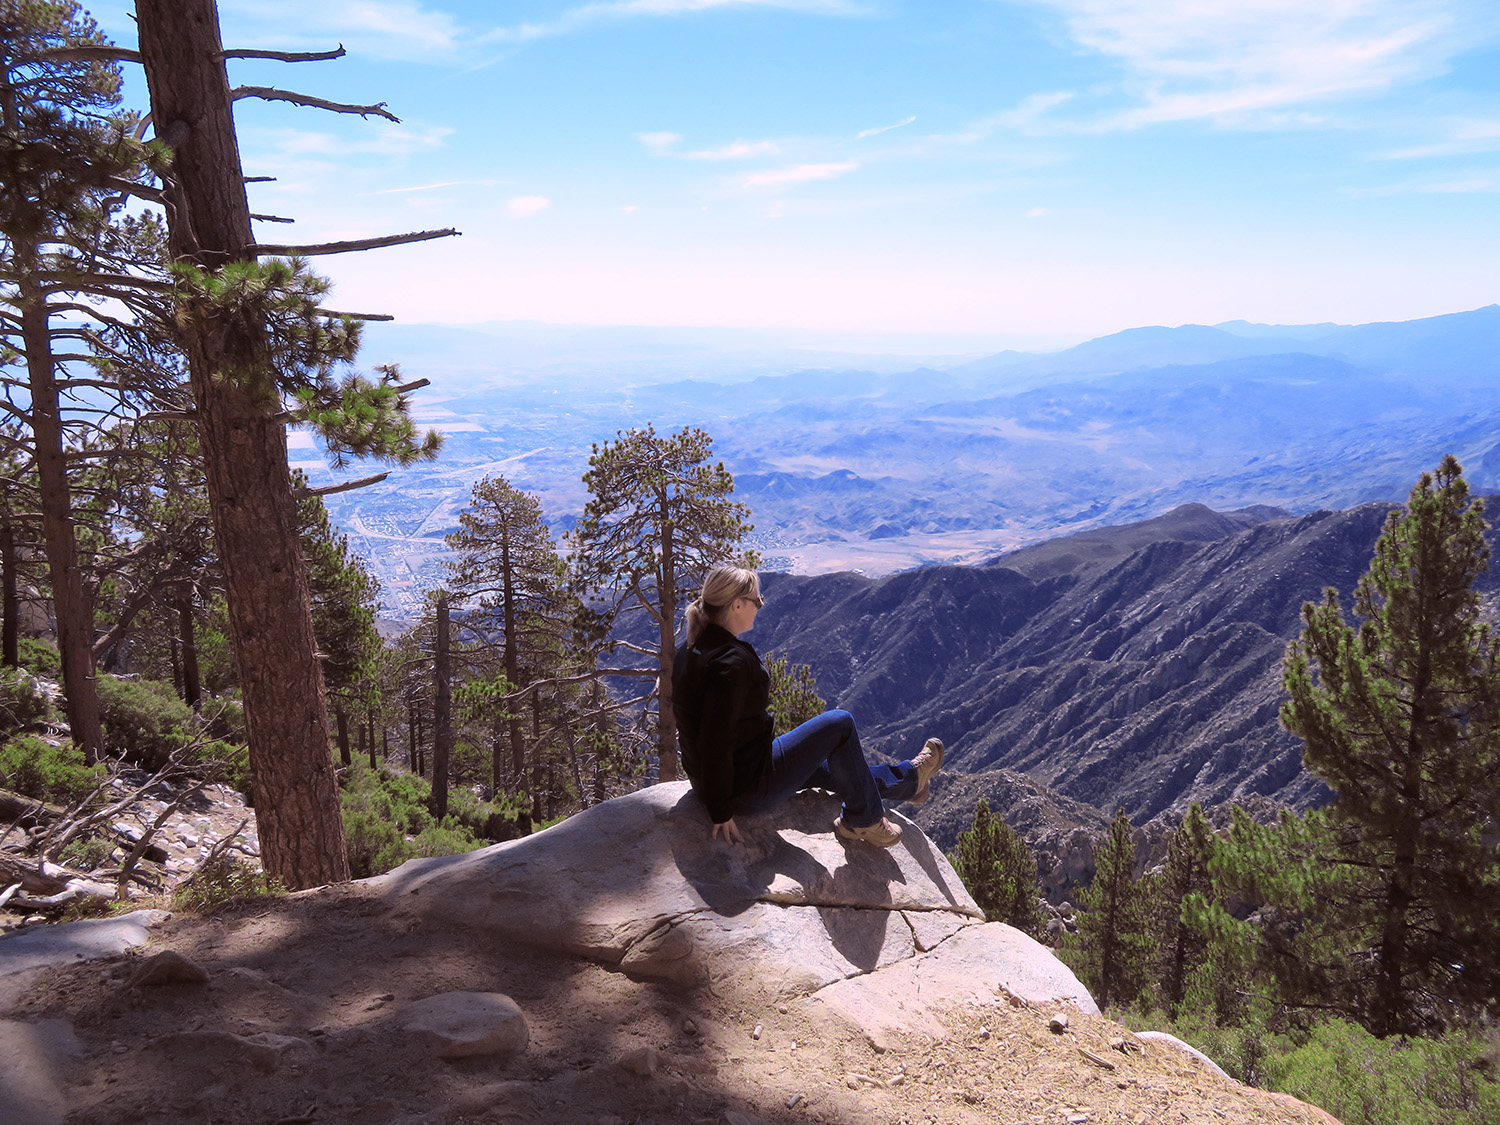 Hike: Mt San Jacinto State Park, Palm Springs